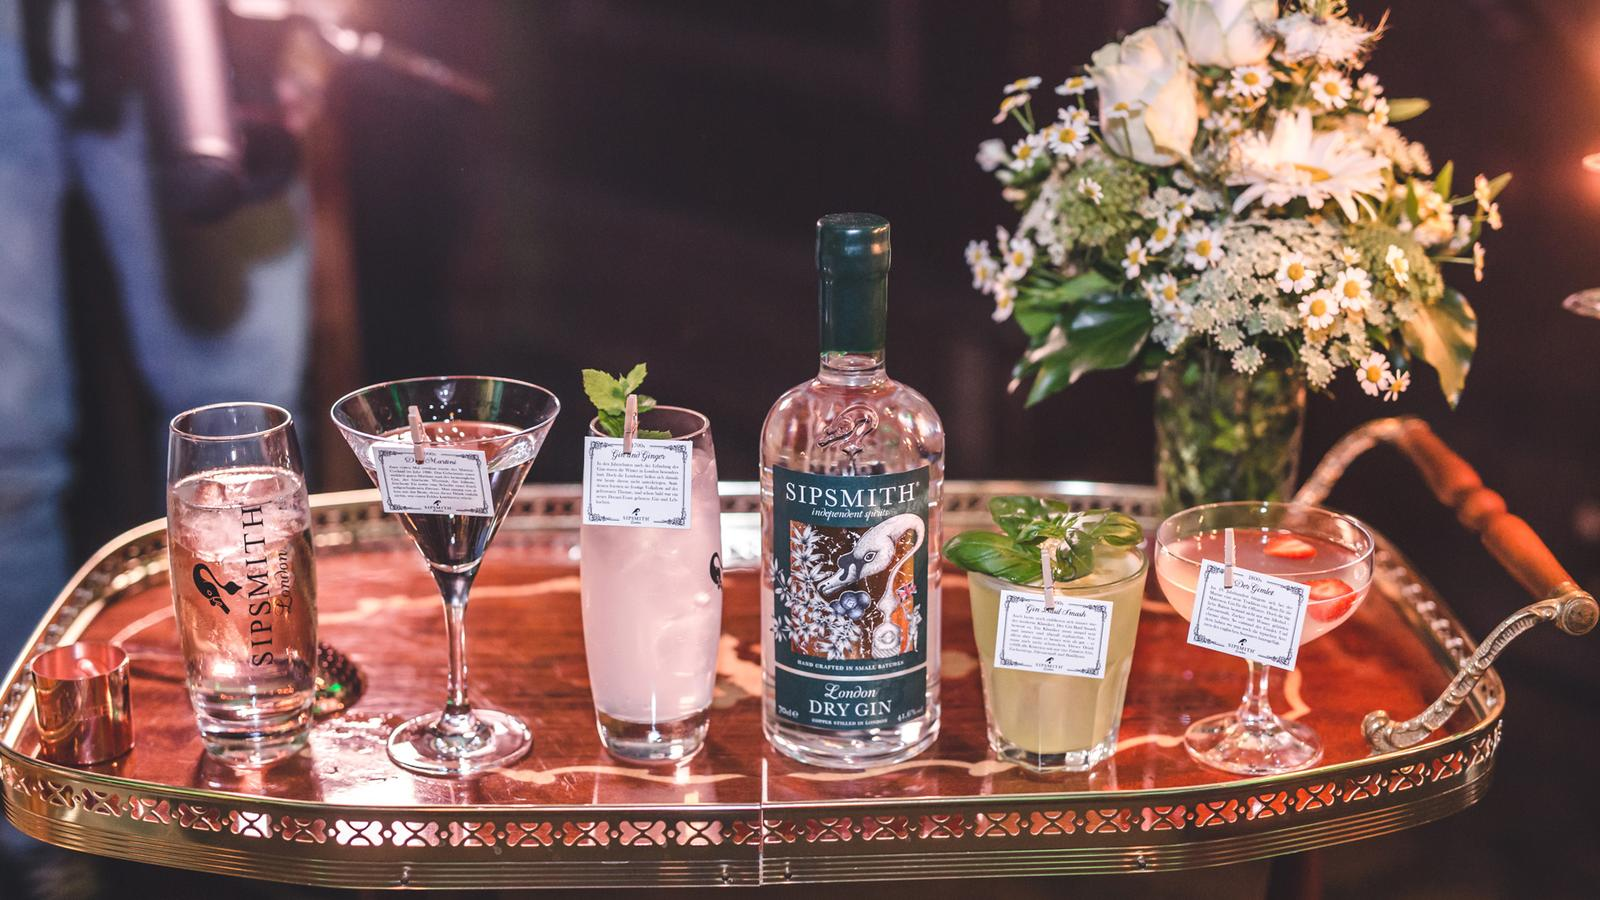 sipsmith drinks